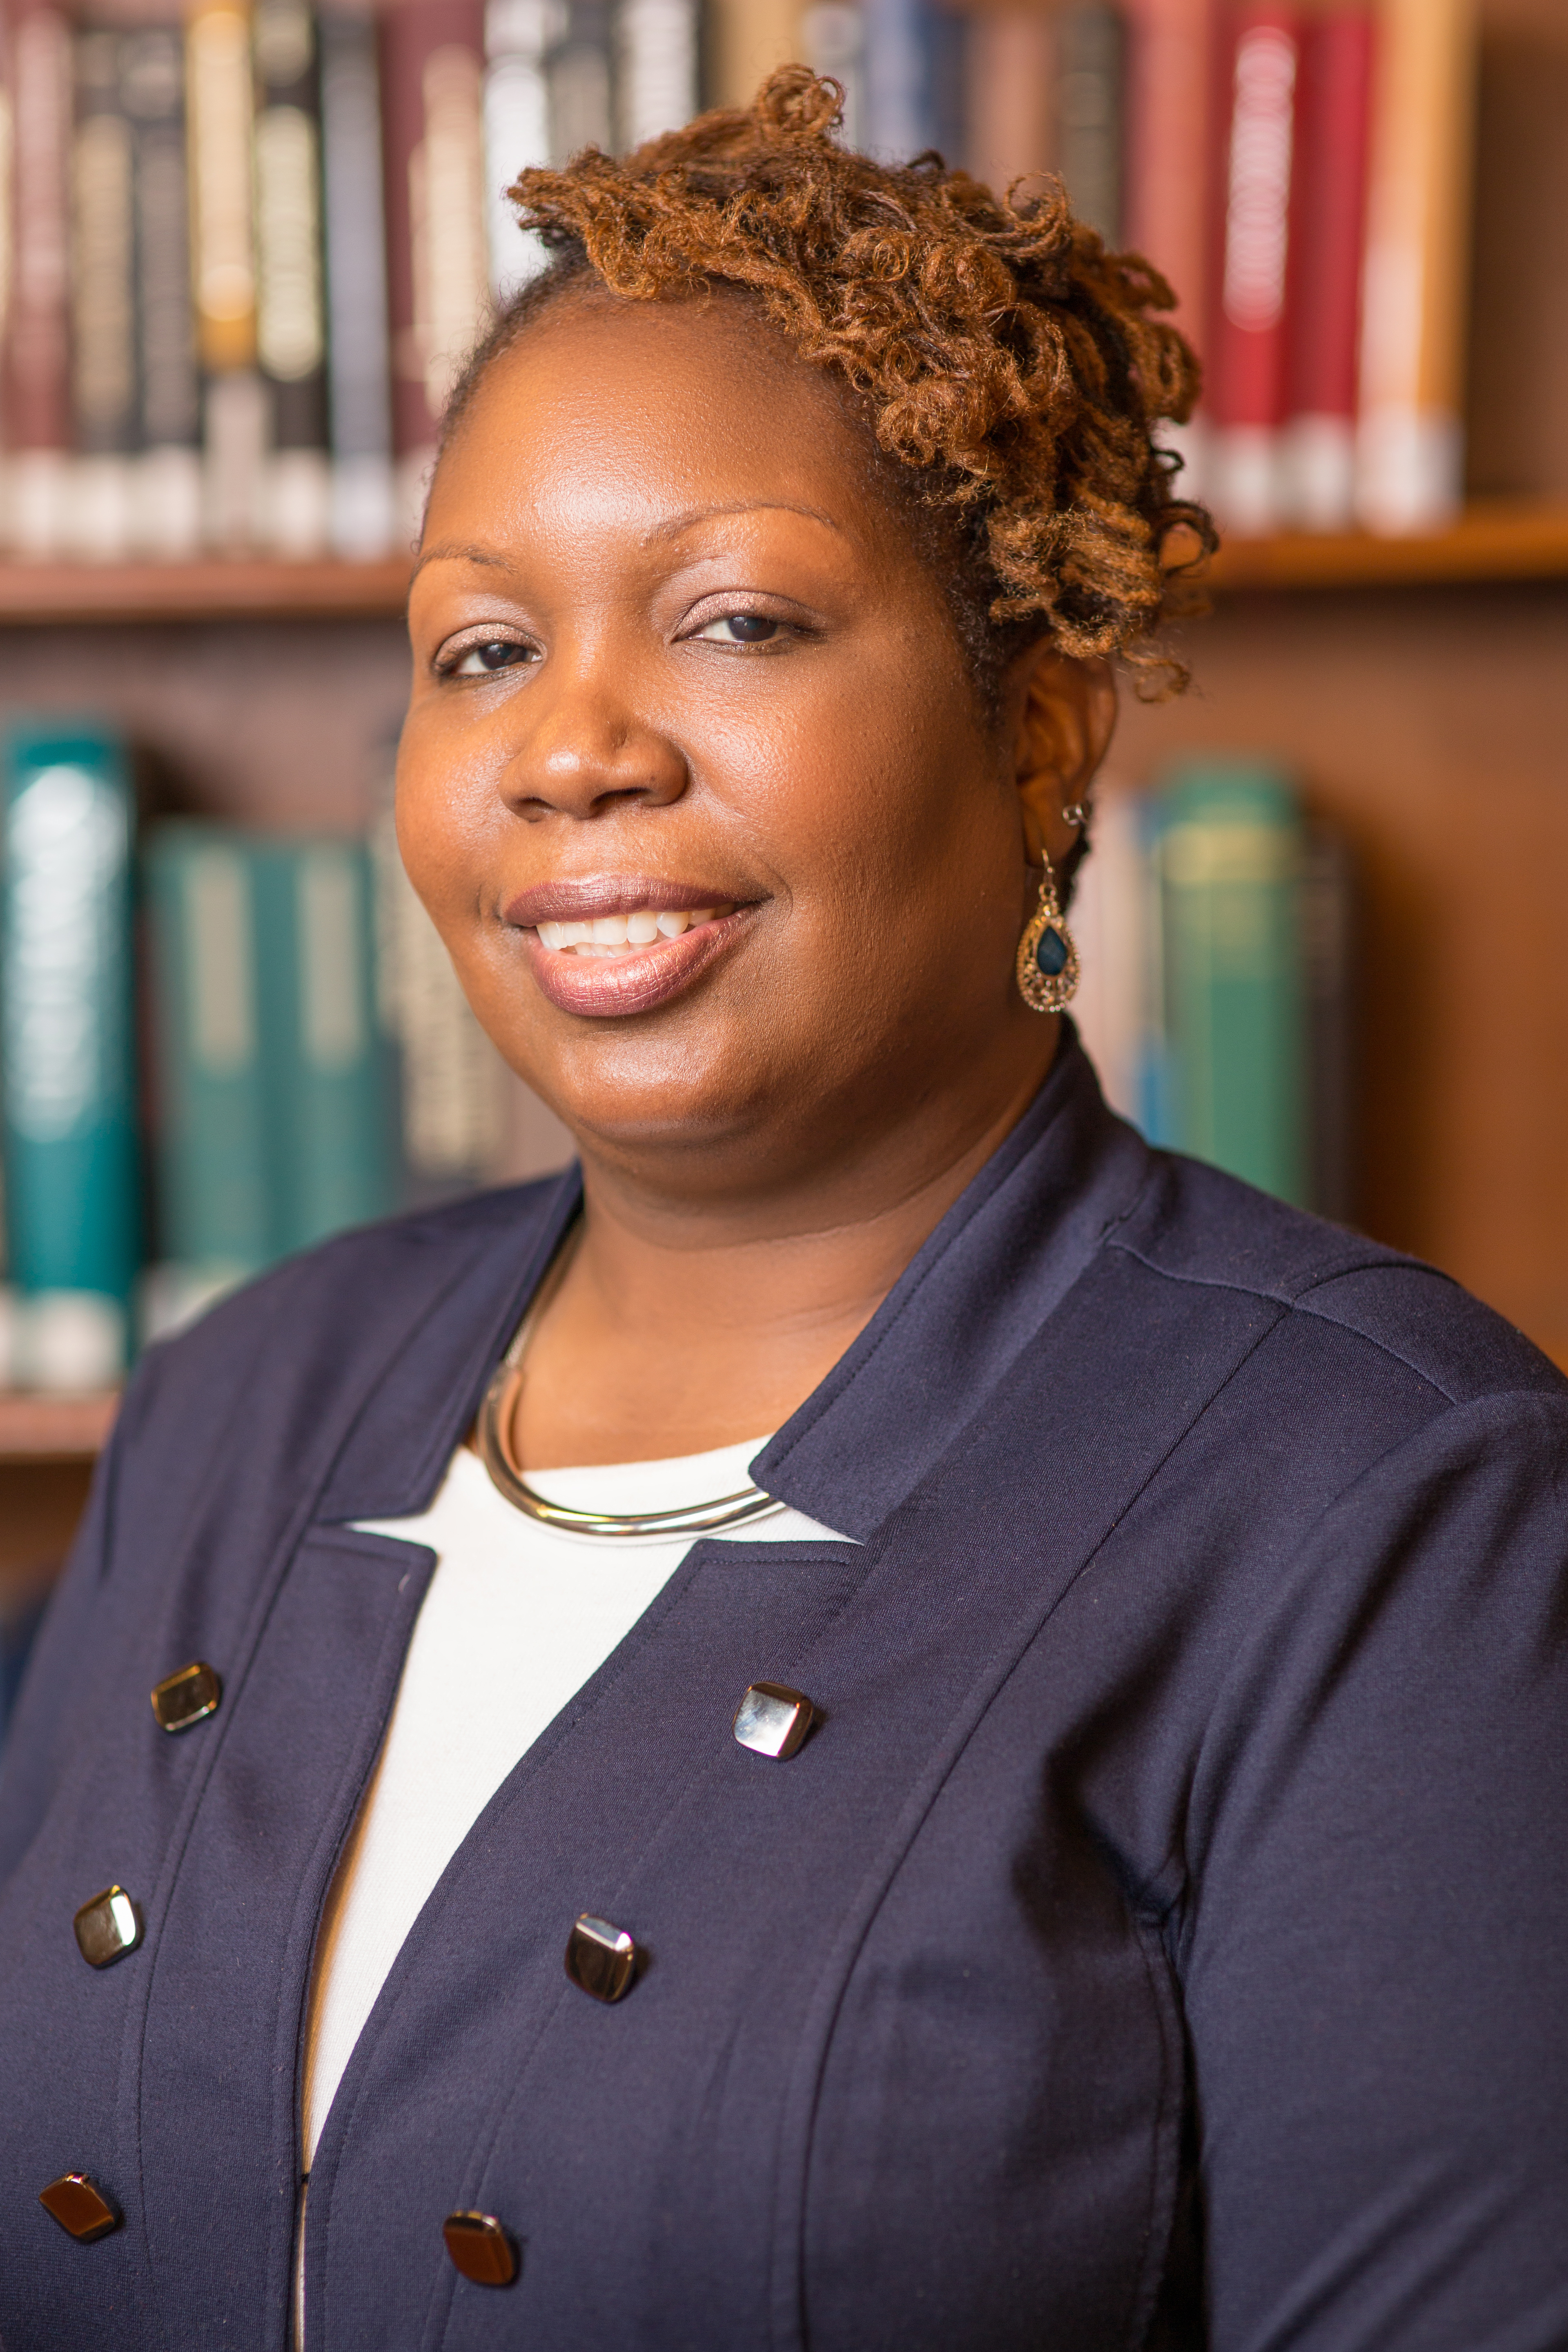 Gesille Dixon Is The Borough Director For Bronx Neighborhood Library Works  At The New York Public